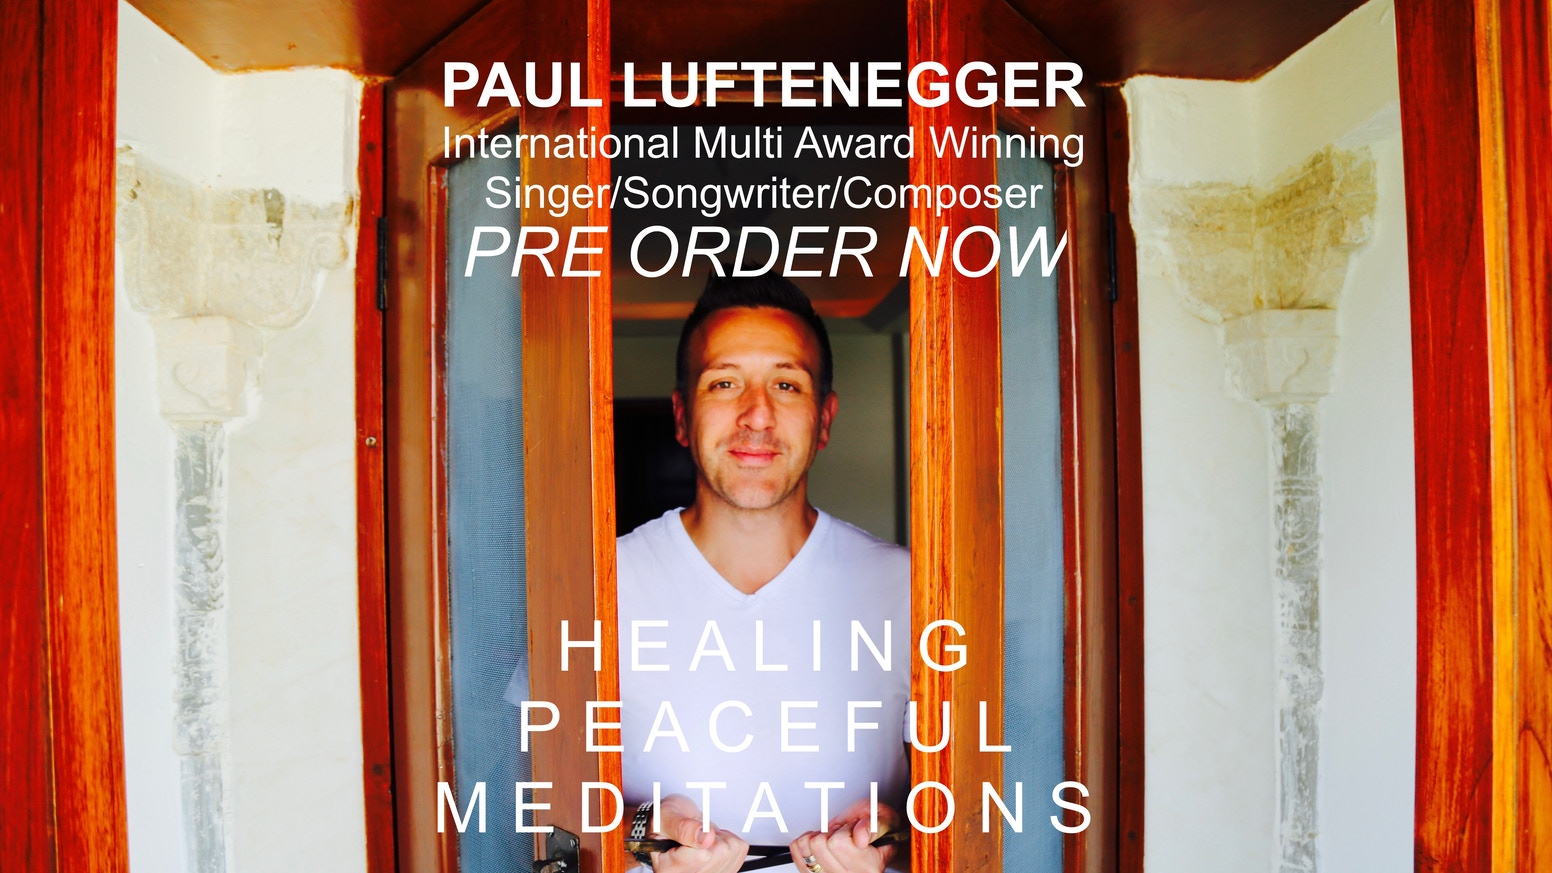 A NEW Healing Peaceful Meditation Album To Help The World! by Paul